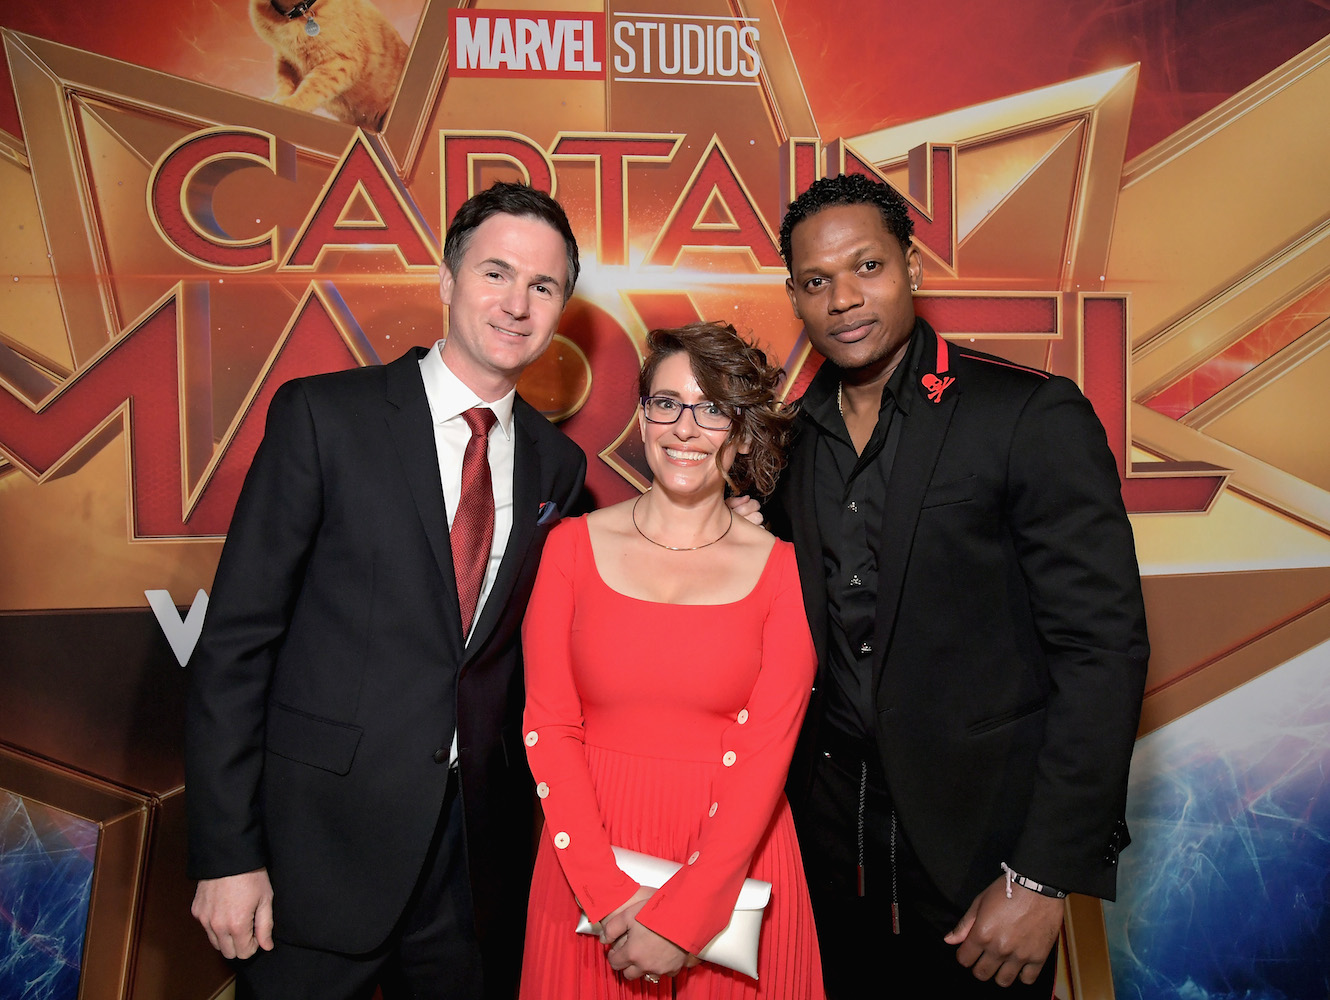 10 Years Ago, Algenis Pérez Soto Lived in the DR & Didn't Speak English. Now He's in a Marvel Movie